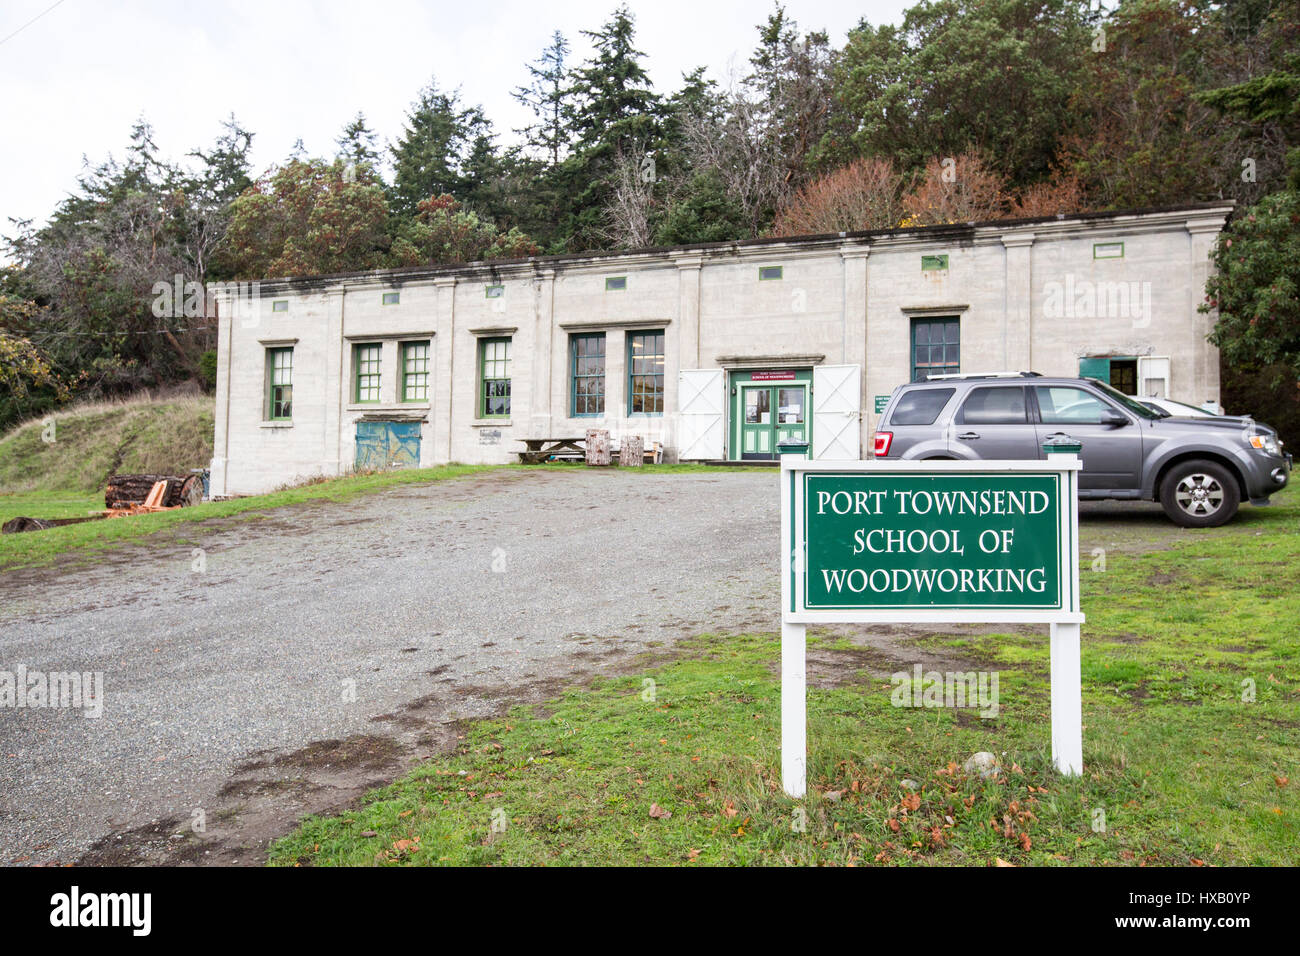 Port Townsend School of Woodworking at Fort Worden in Washington State Park. - Stock Image